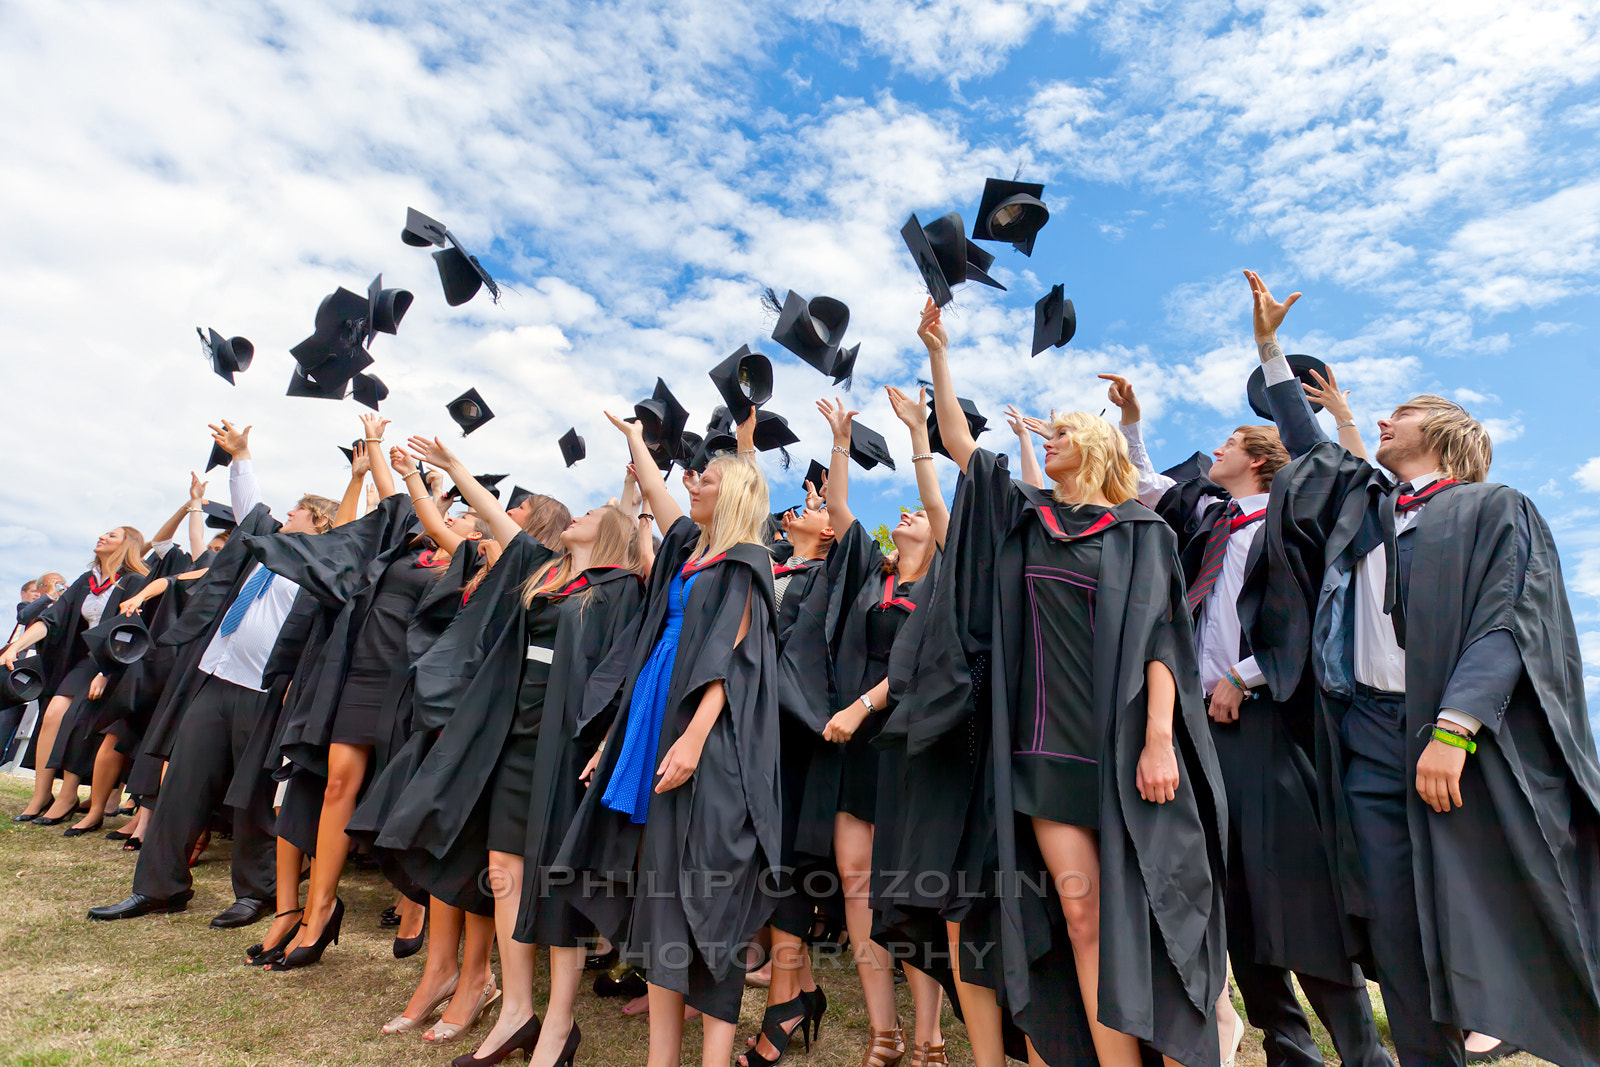 Photograph Essex Grads by Philip Cozzolino on 500px